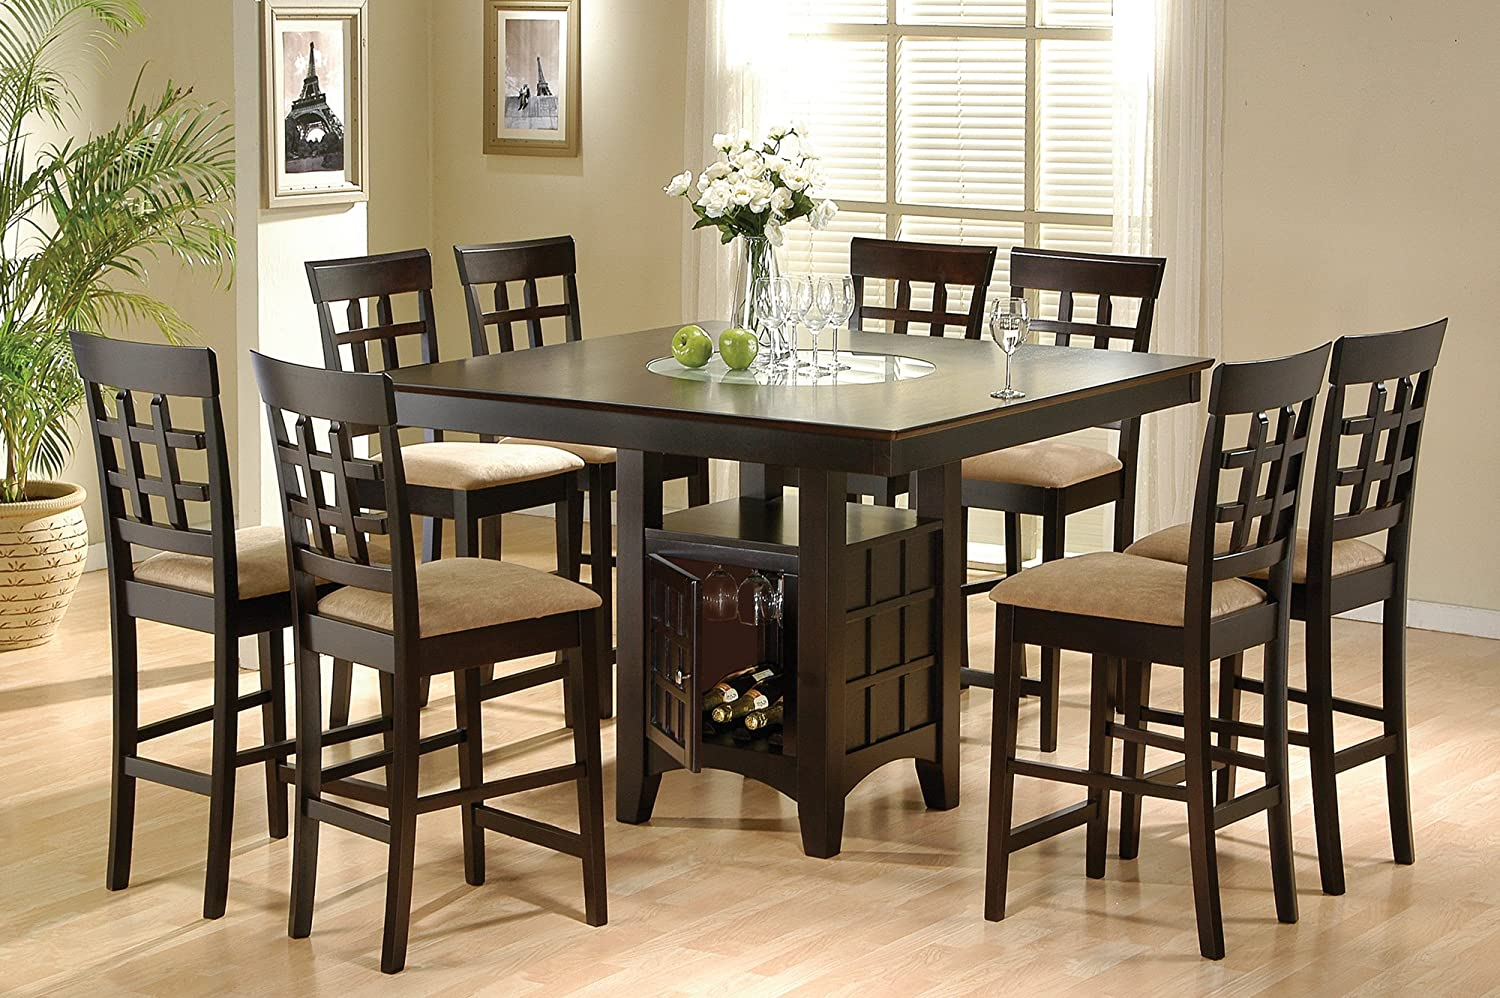 Top 10 Best Dining Room Sets